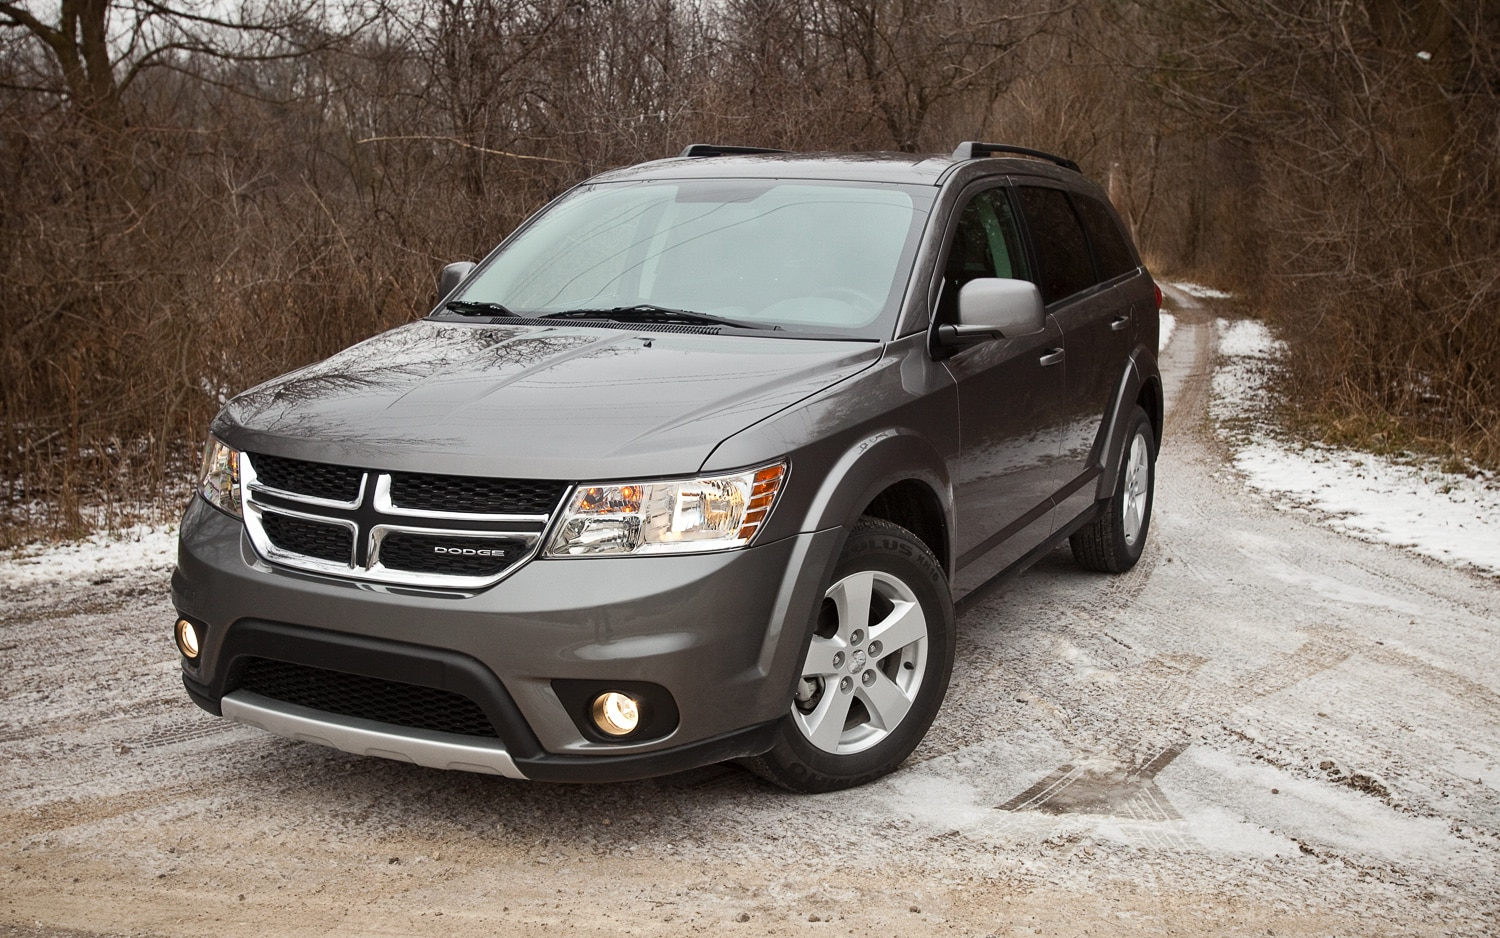 2012 dodge journey sxt editors 39 notebook automobile. Black Bedroom Furniture Sets. Home Design Ideas